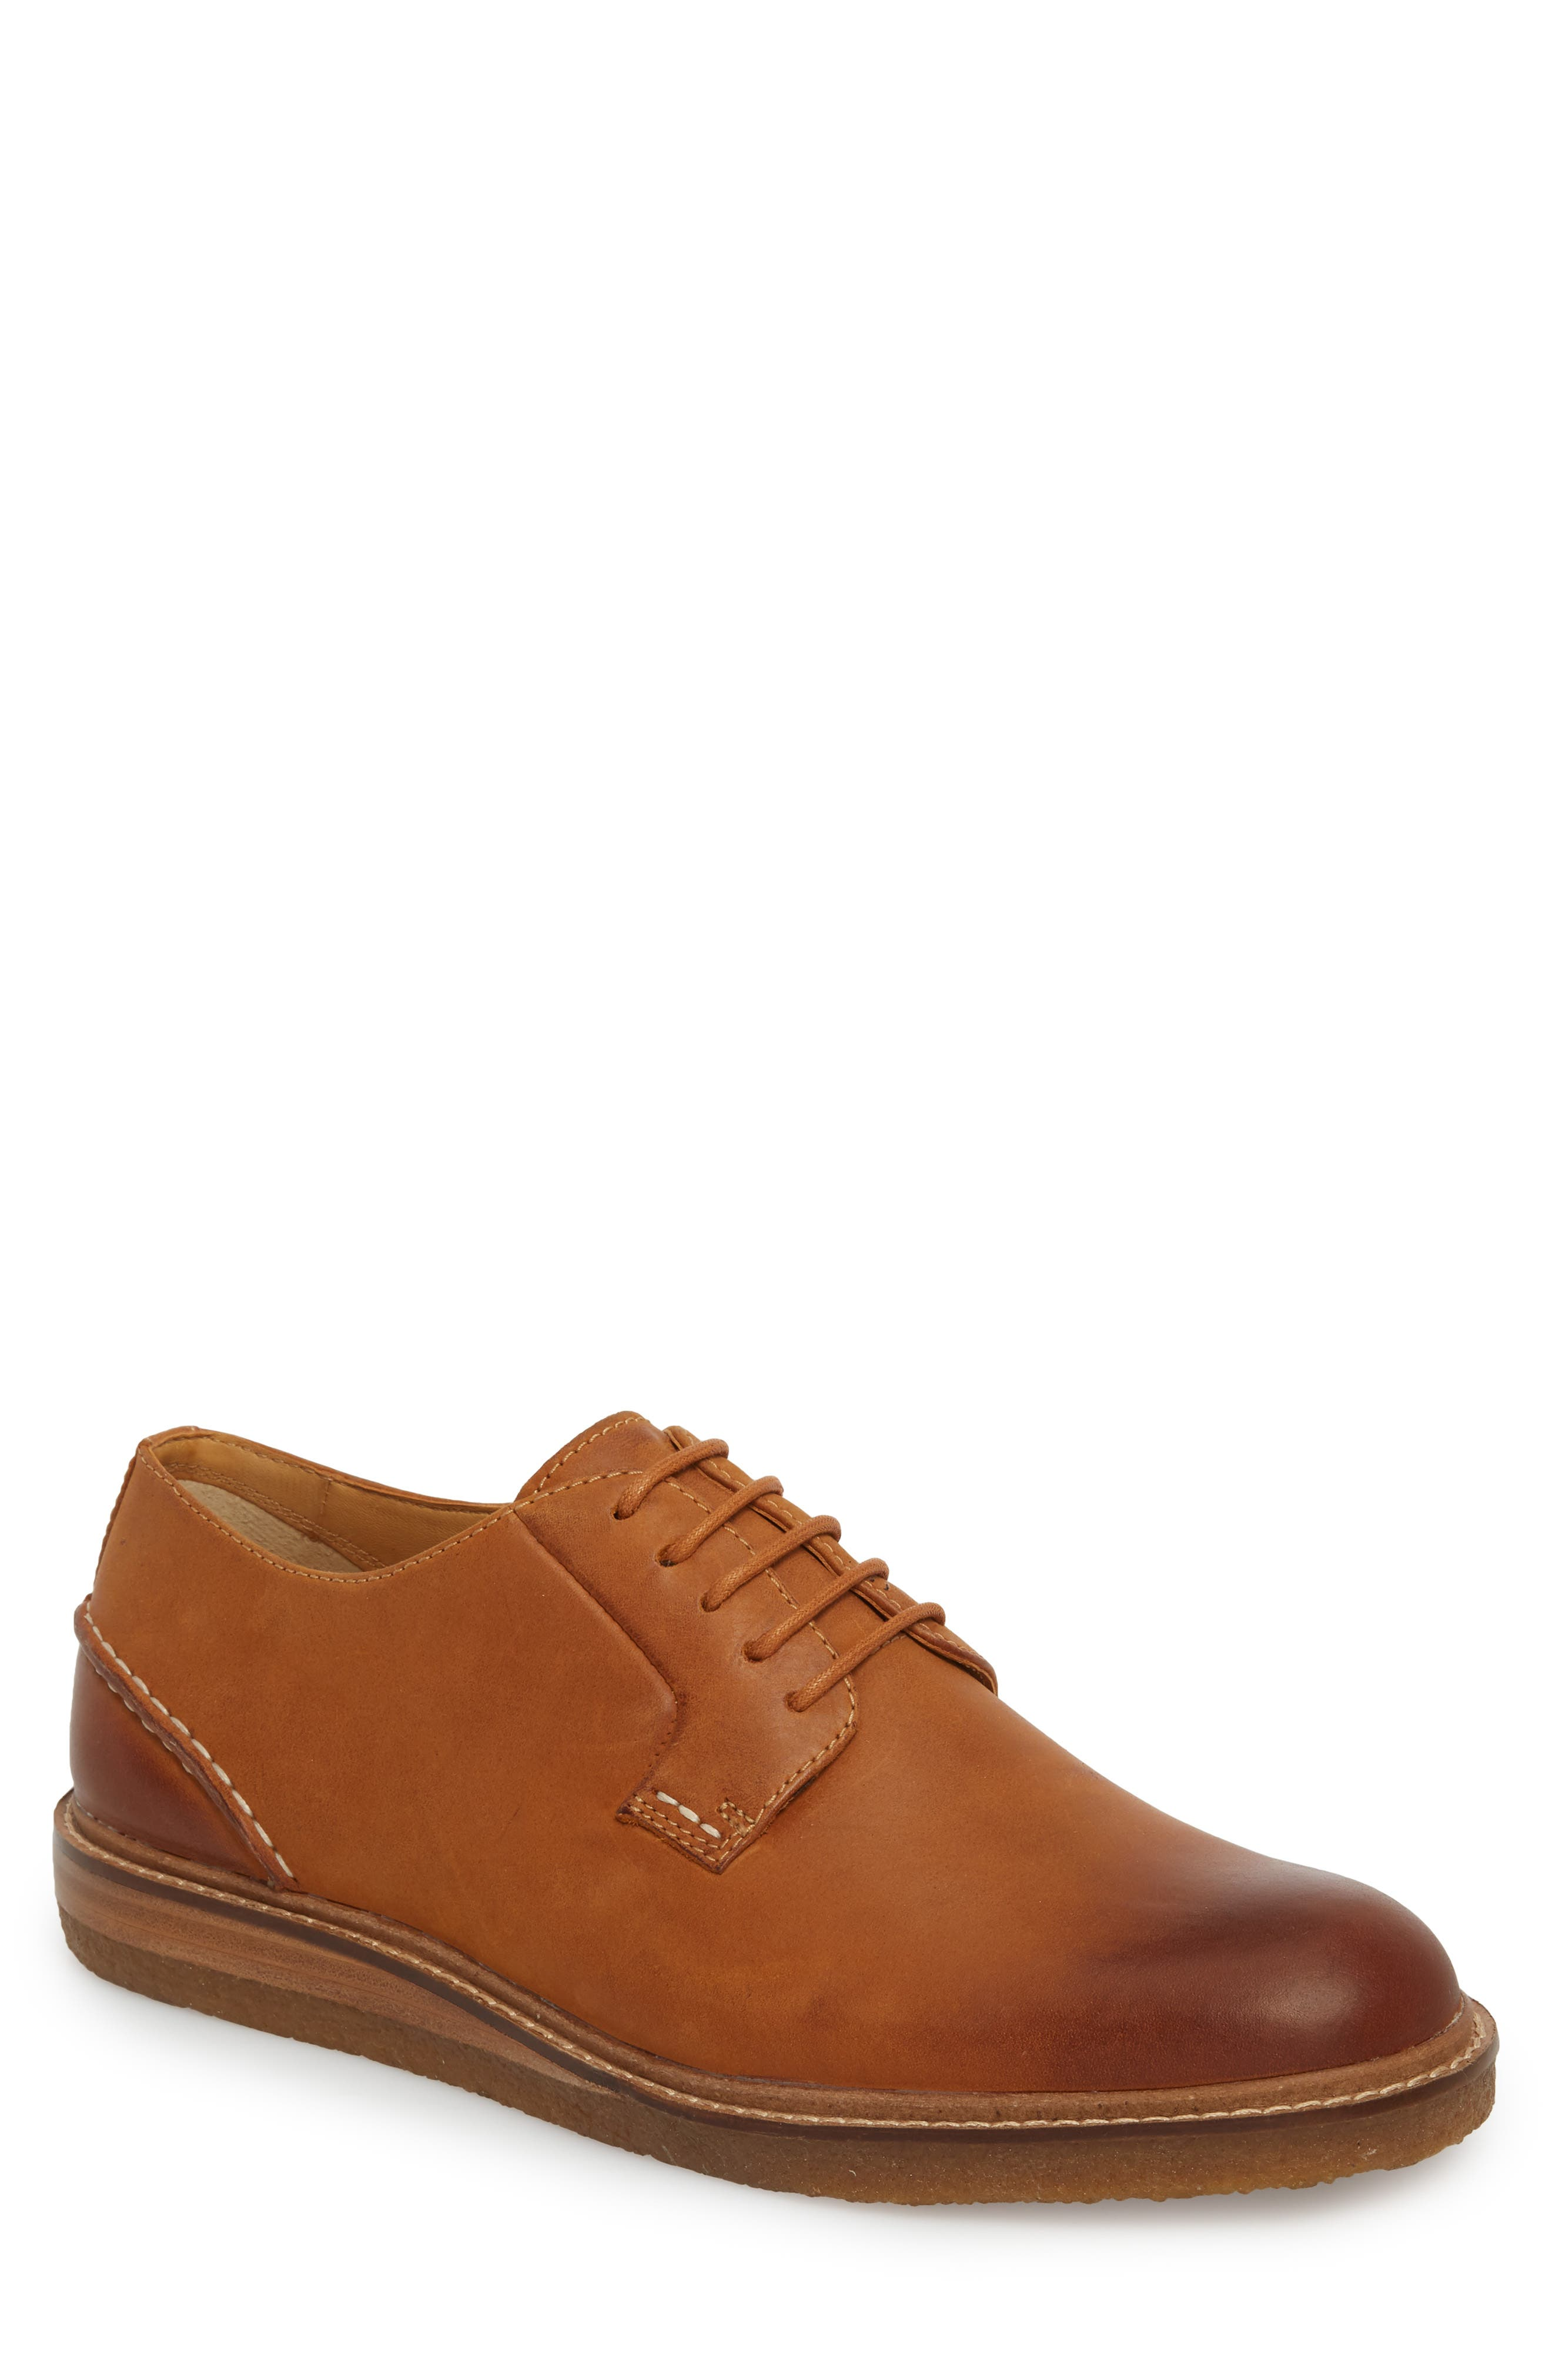 Gold Cup Plain Toe Derby,                         Main,                         color,